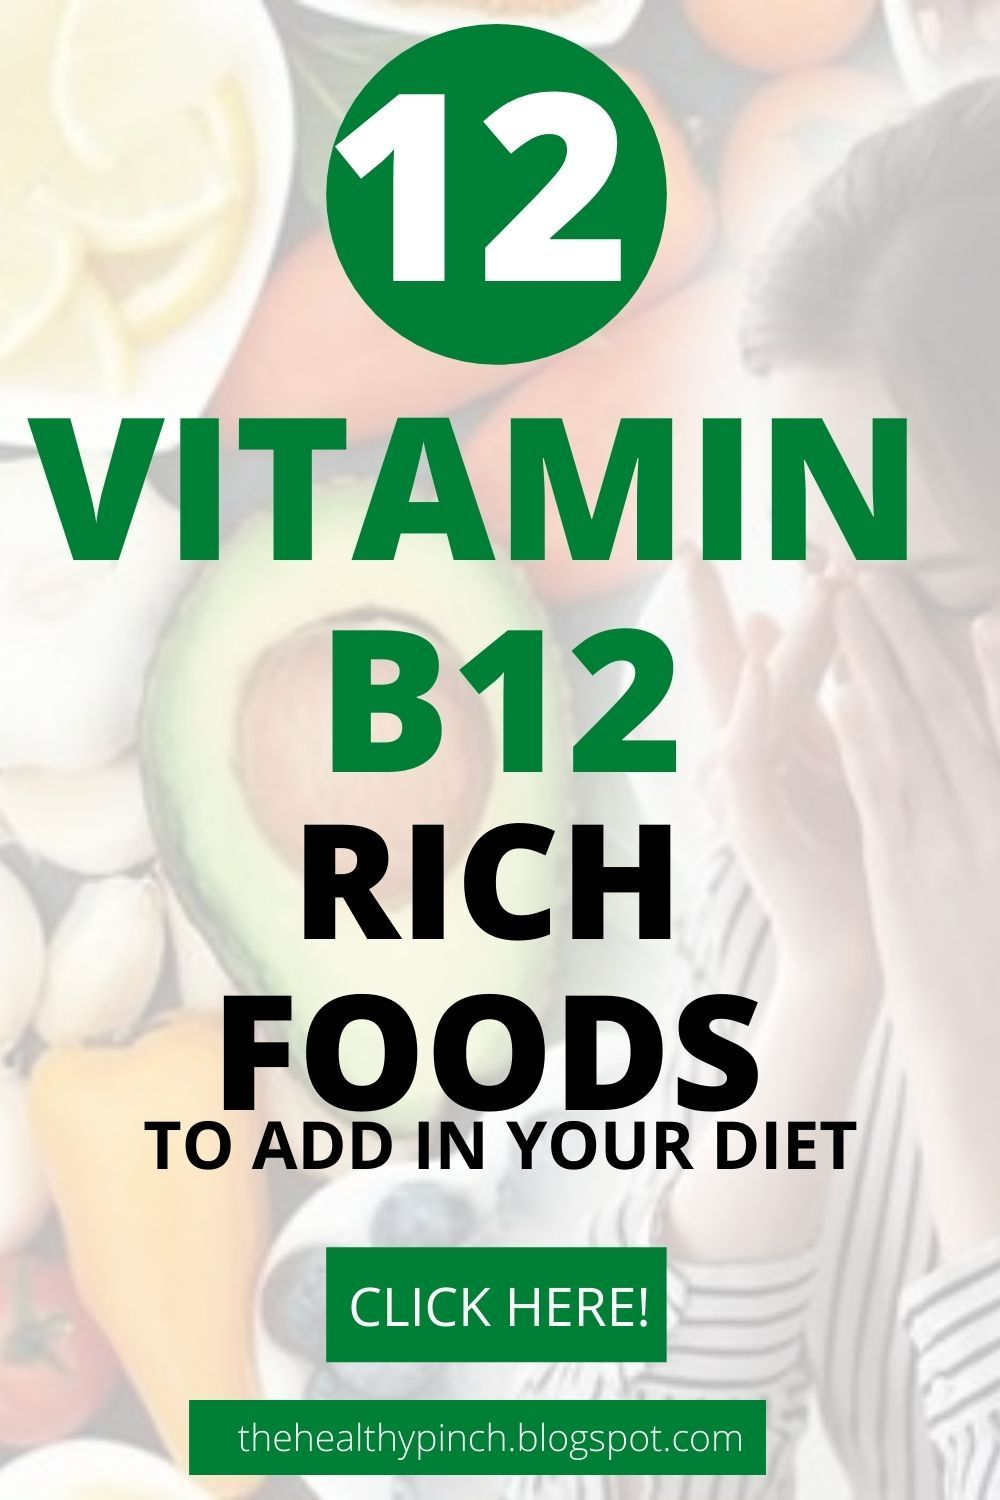 Top 12 Vitamin B12 rich Foods Add in Your Diet to Avoid